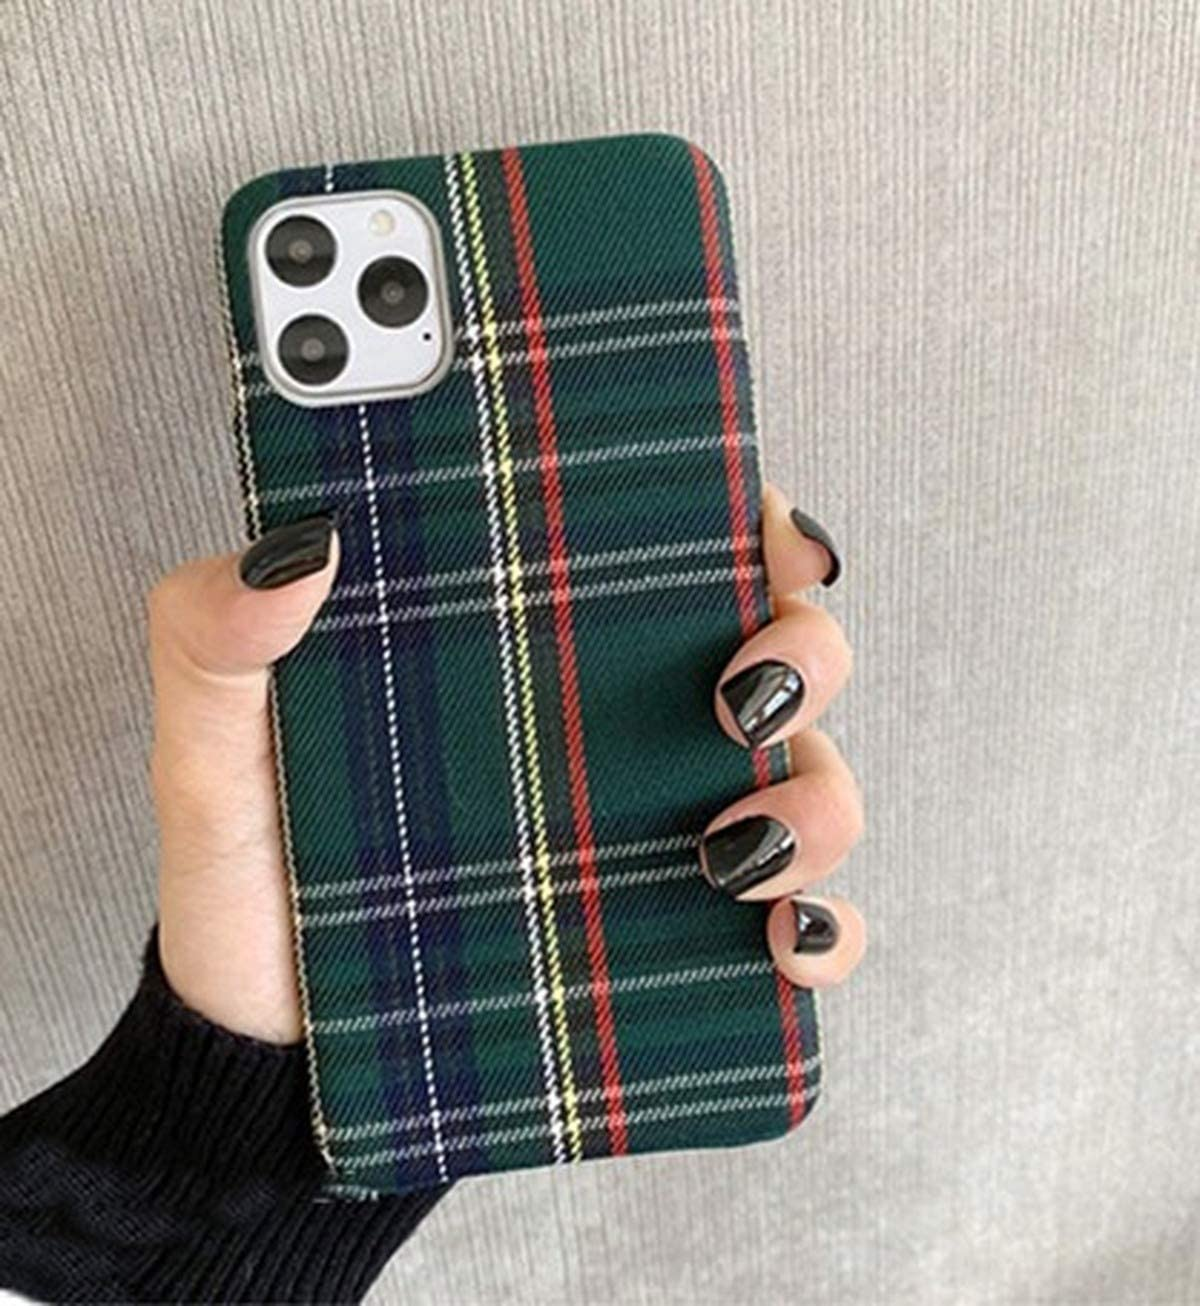 Mixneer Warm Flannel Plaid Cloth Phone Case Simple Plush Fabric Phone Case Compatible with iPhone 11 12 Mini Pro Max SE 2020 7 8 6 6S Plus XR X XS Cover (Compatible with iPhone xr, Green)